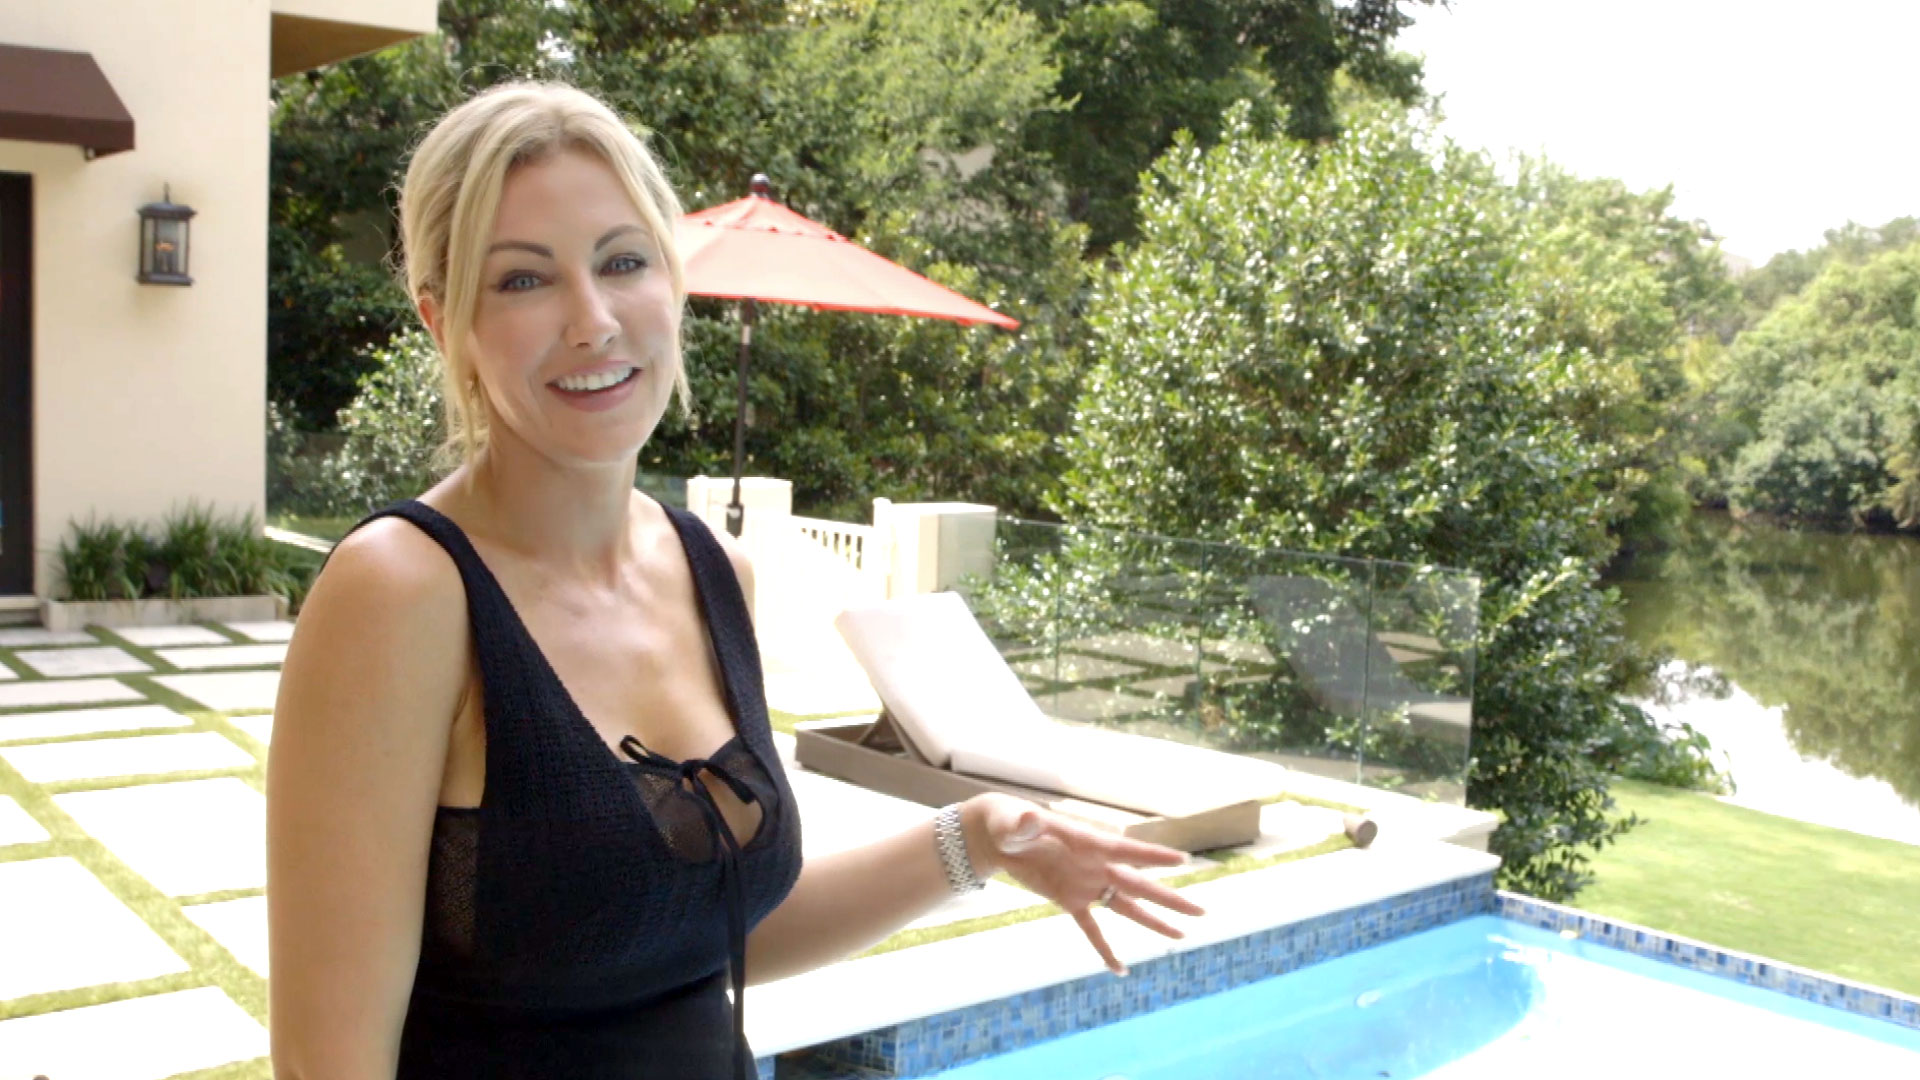 d36e1f08b The Real Housewives of Dallas House Tours | The Real Housewives of ...